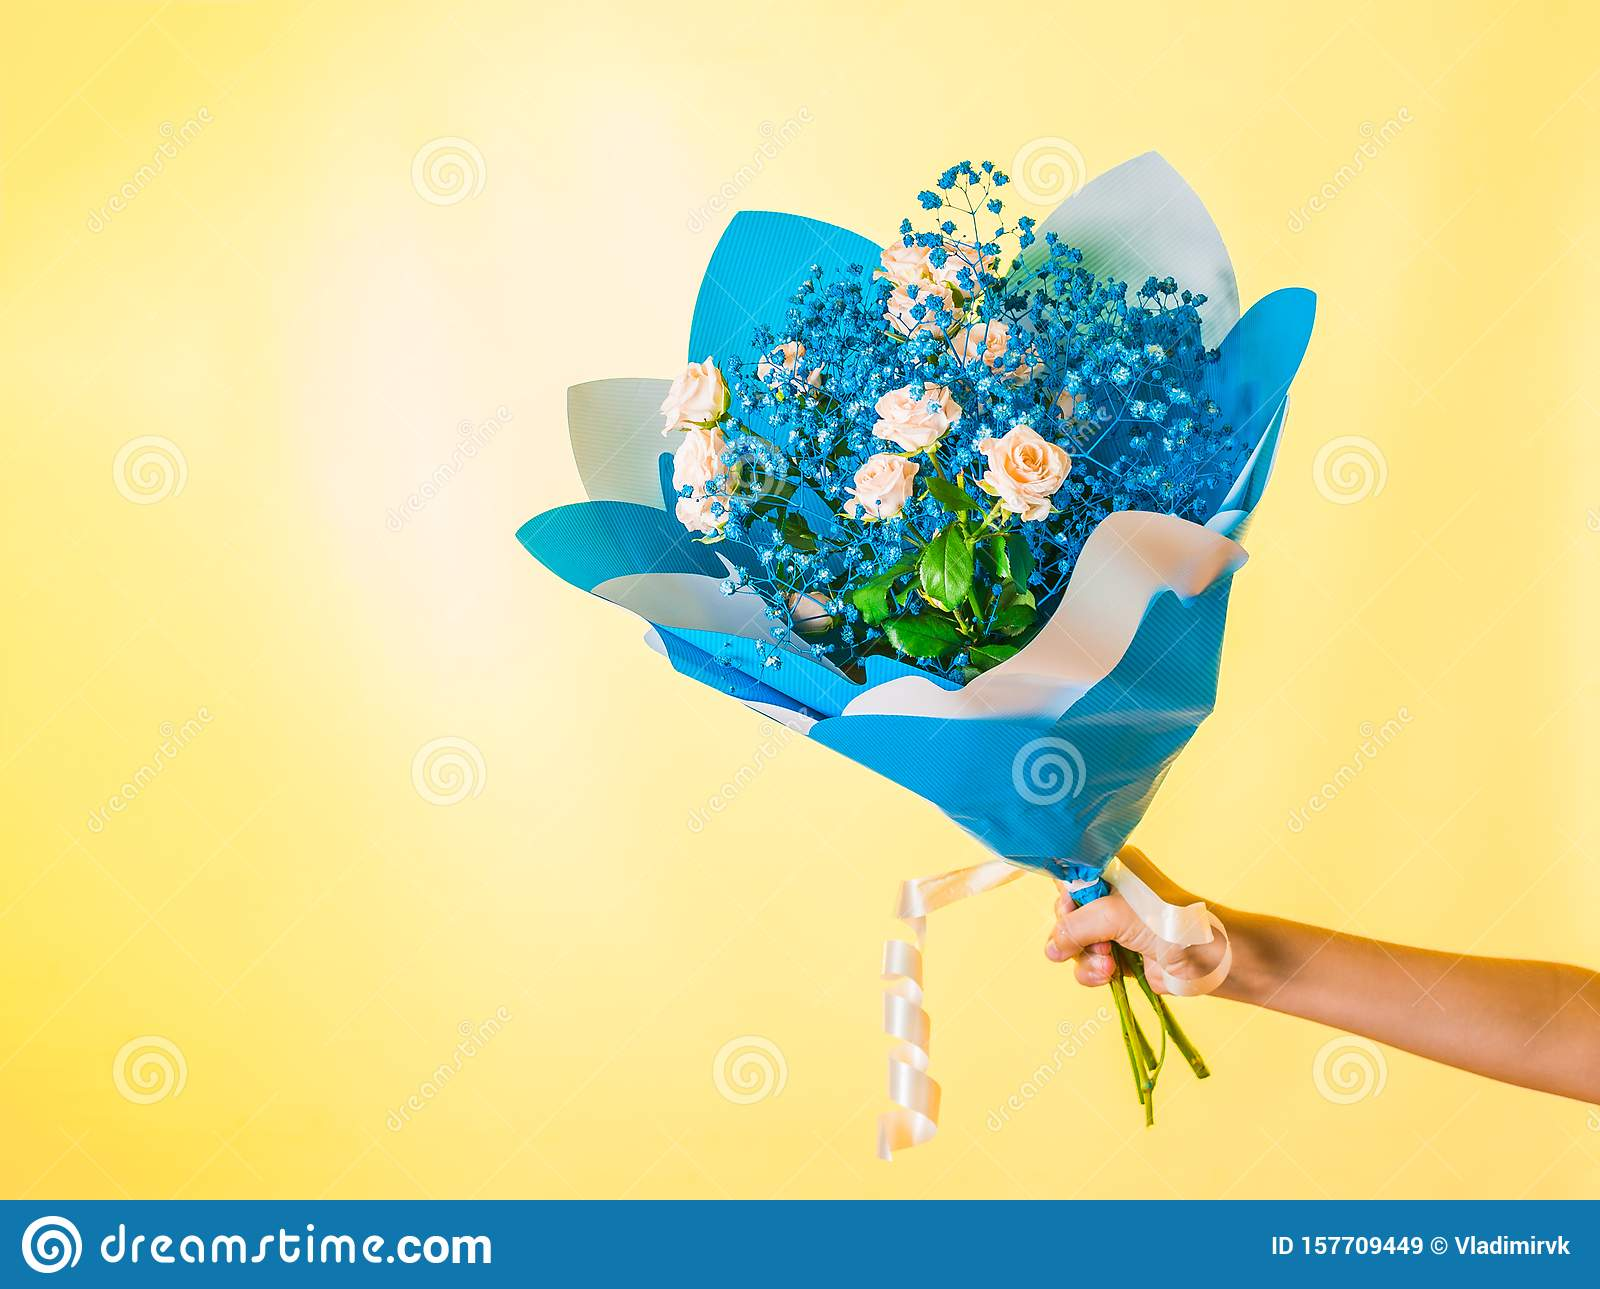 Bouquet With Yellow Roses And Small Blue Flowers In Hand On A Yellow Background A Gift For A Woman Space For Your Text Stock Image Image Of Blossom Bulb 157709449